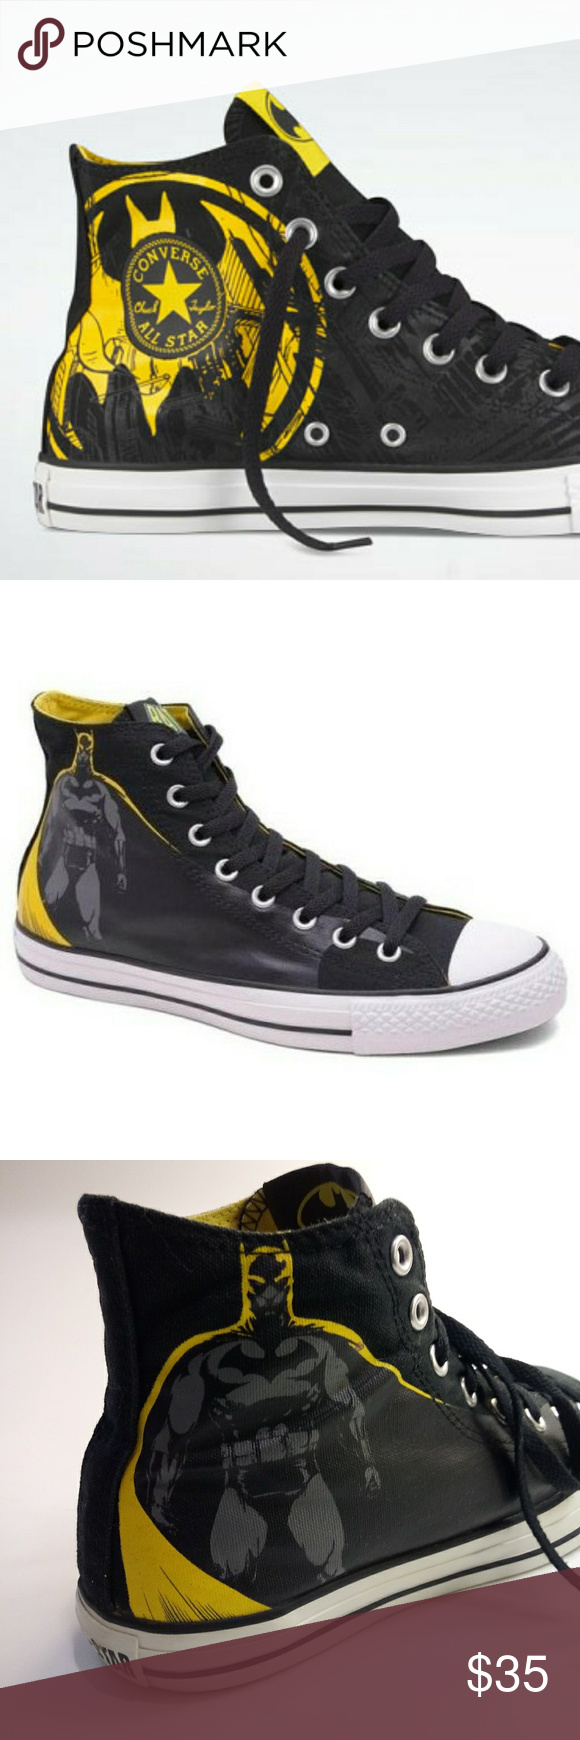 4906fb145f5e Converse DC Comics Batman Caped Crusader Sneakers Batman fans get much love  from Converse as well